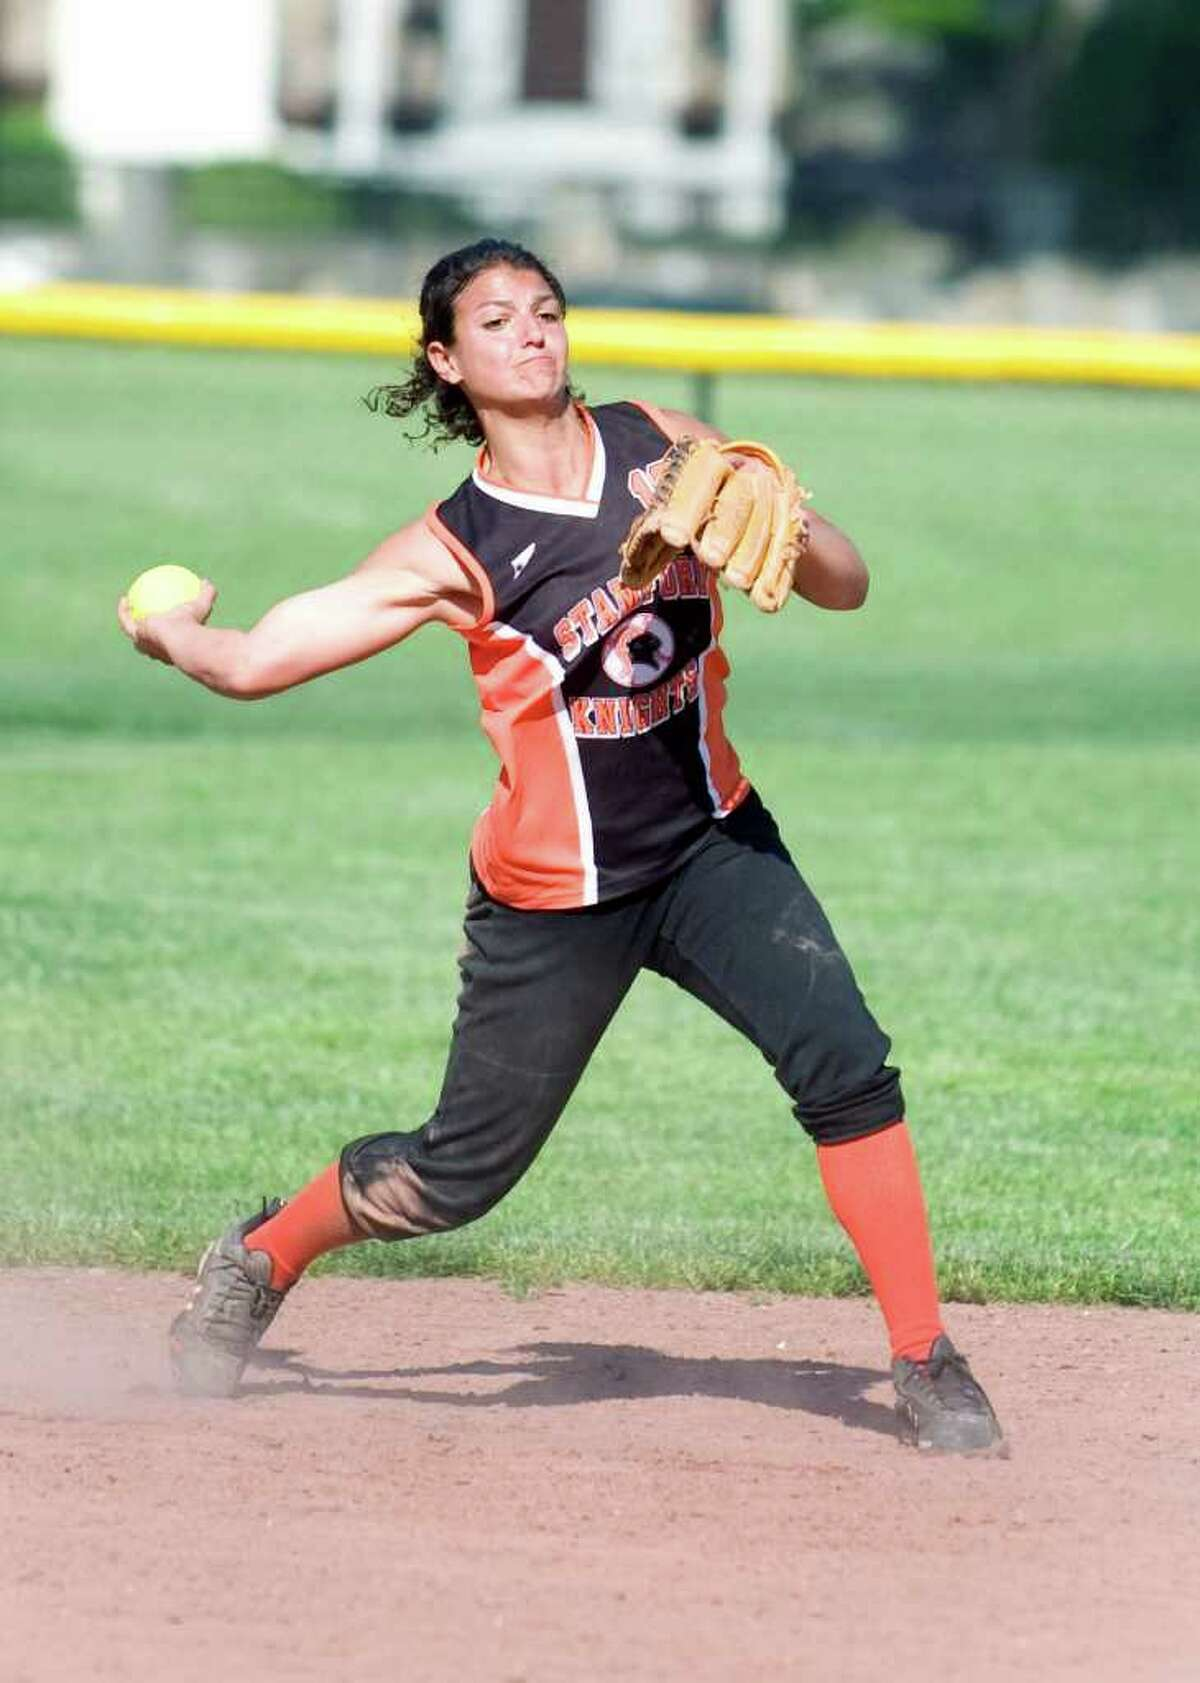 Stamford High School's Krista Robustelli makes a throw to first against Shelton High School during softball CIAC Class LL game in Stamford, Conn. on Tuesday May 31, 2011. Stamford won 9-3.